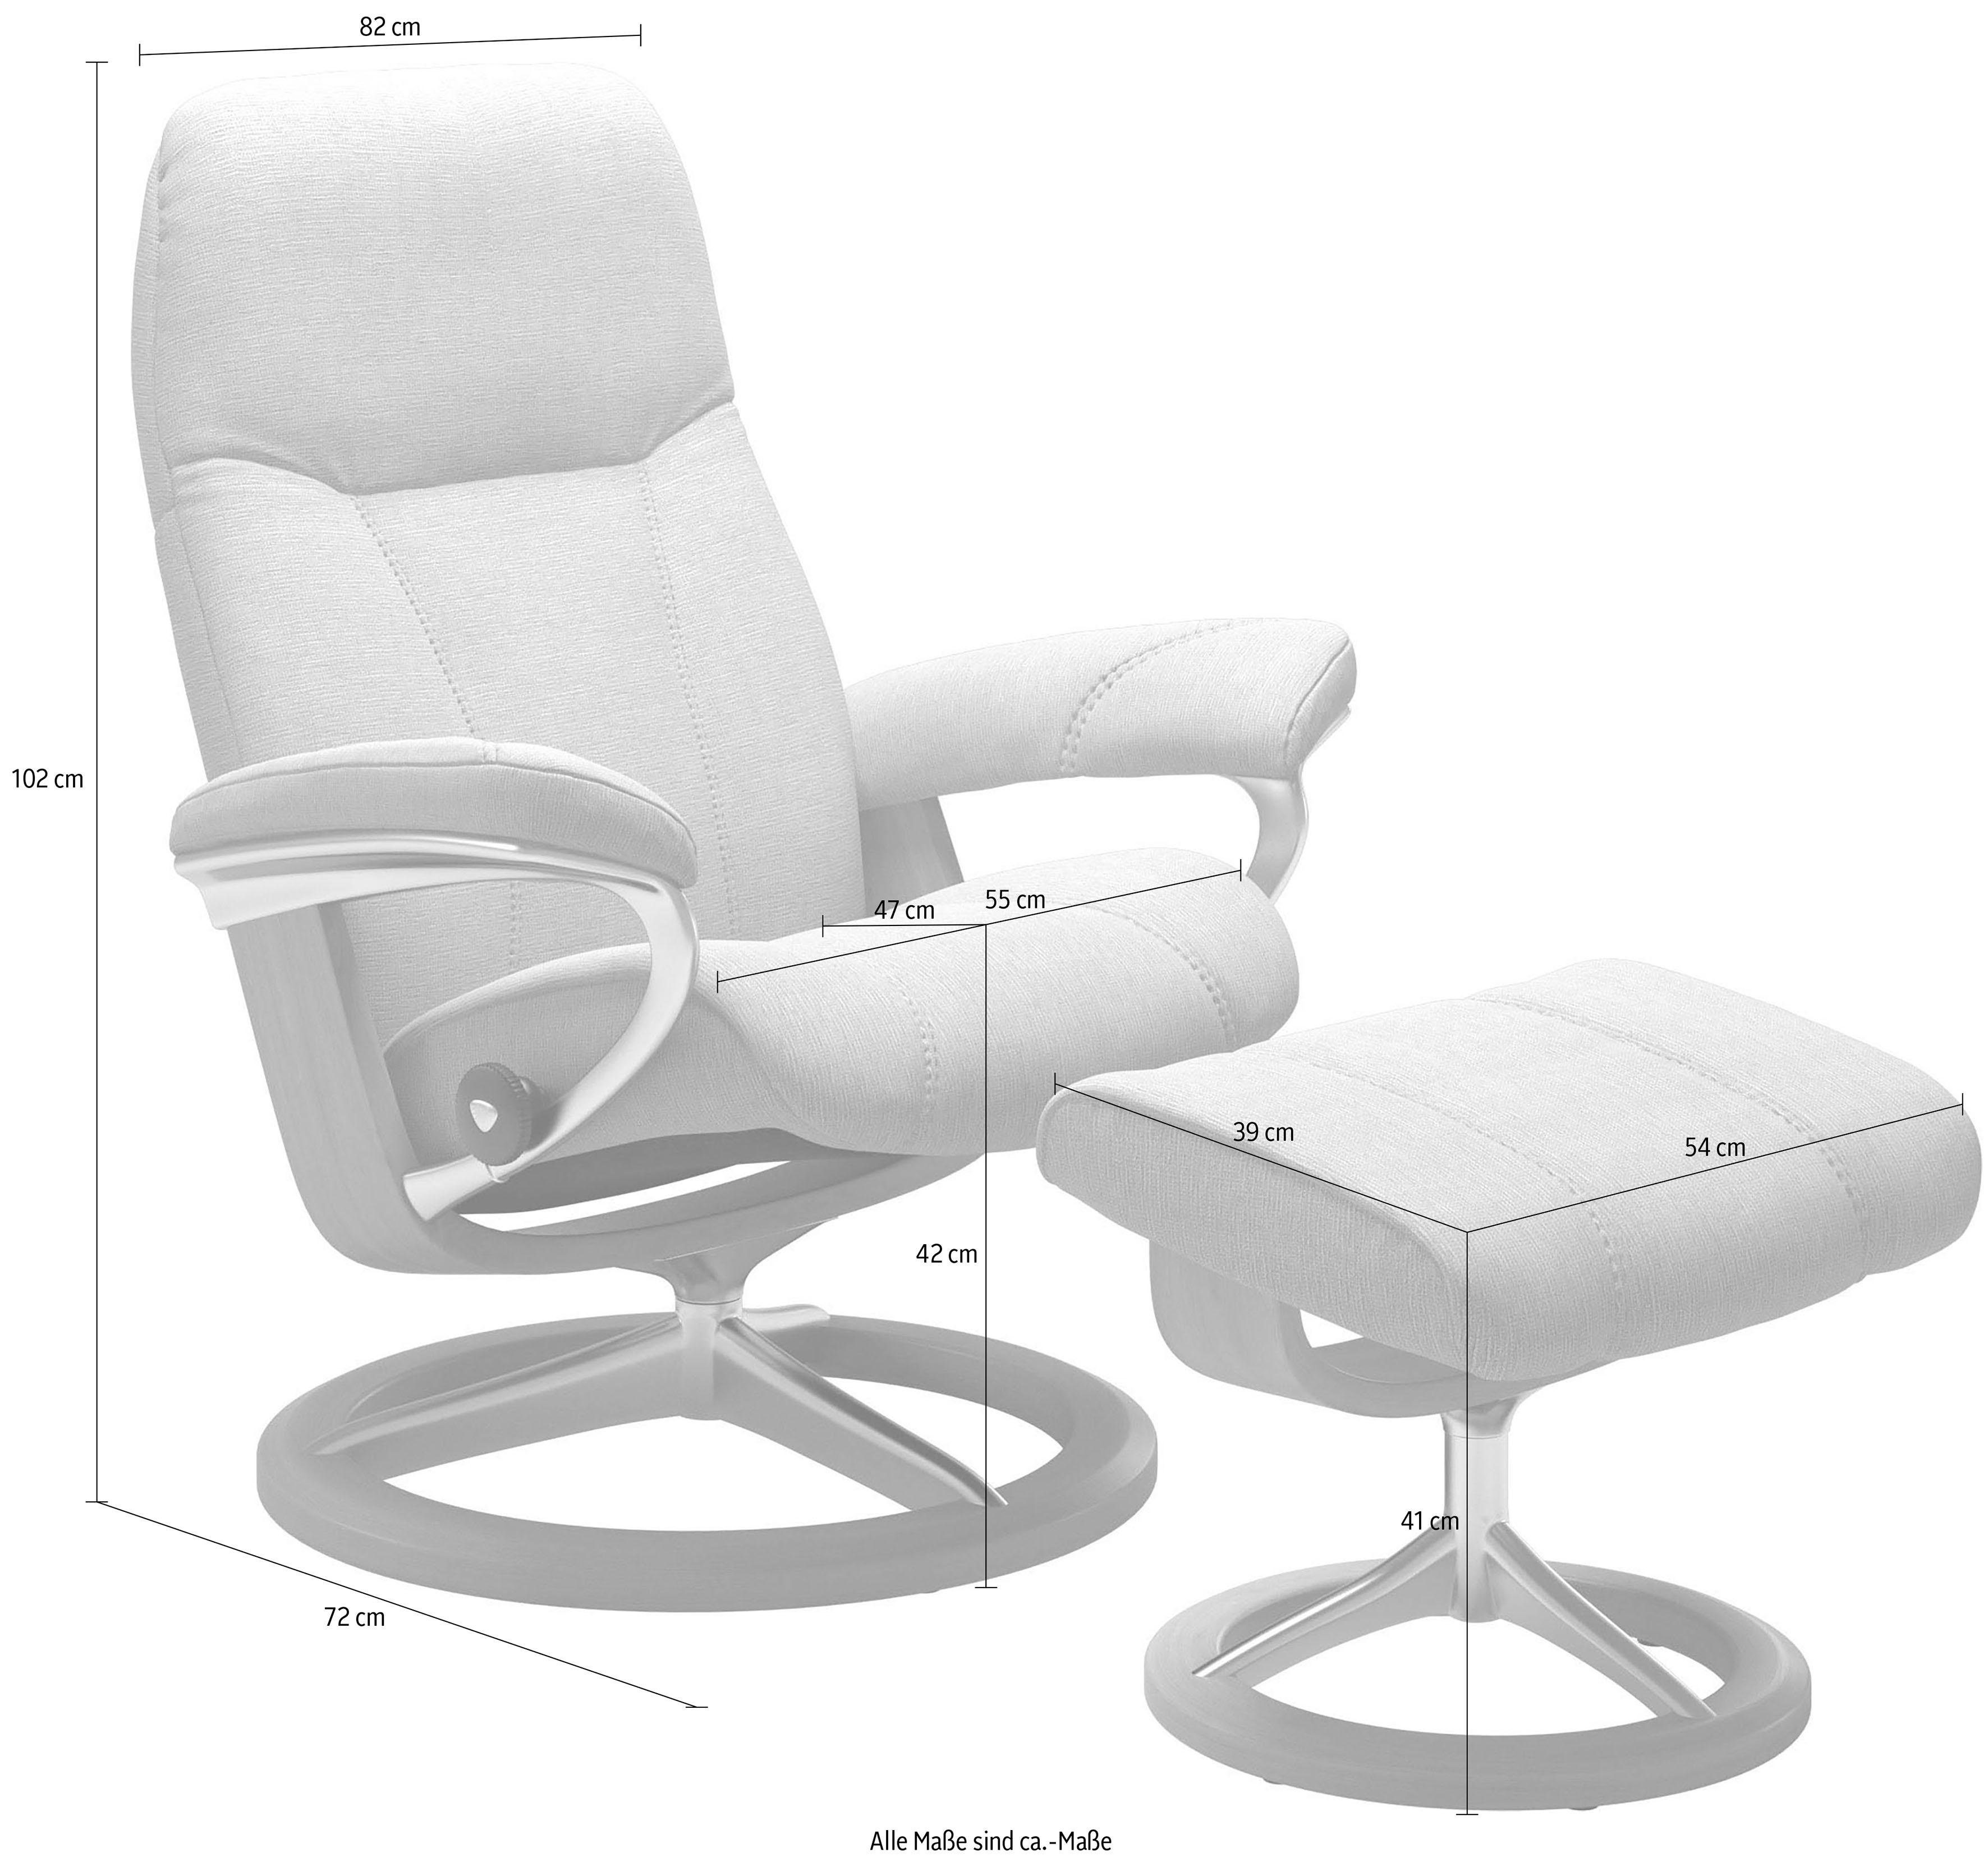 Stressless Sessel Inkl. Hocker Modell Sunrise (m) Classic Stressless Sessel Signature